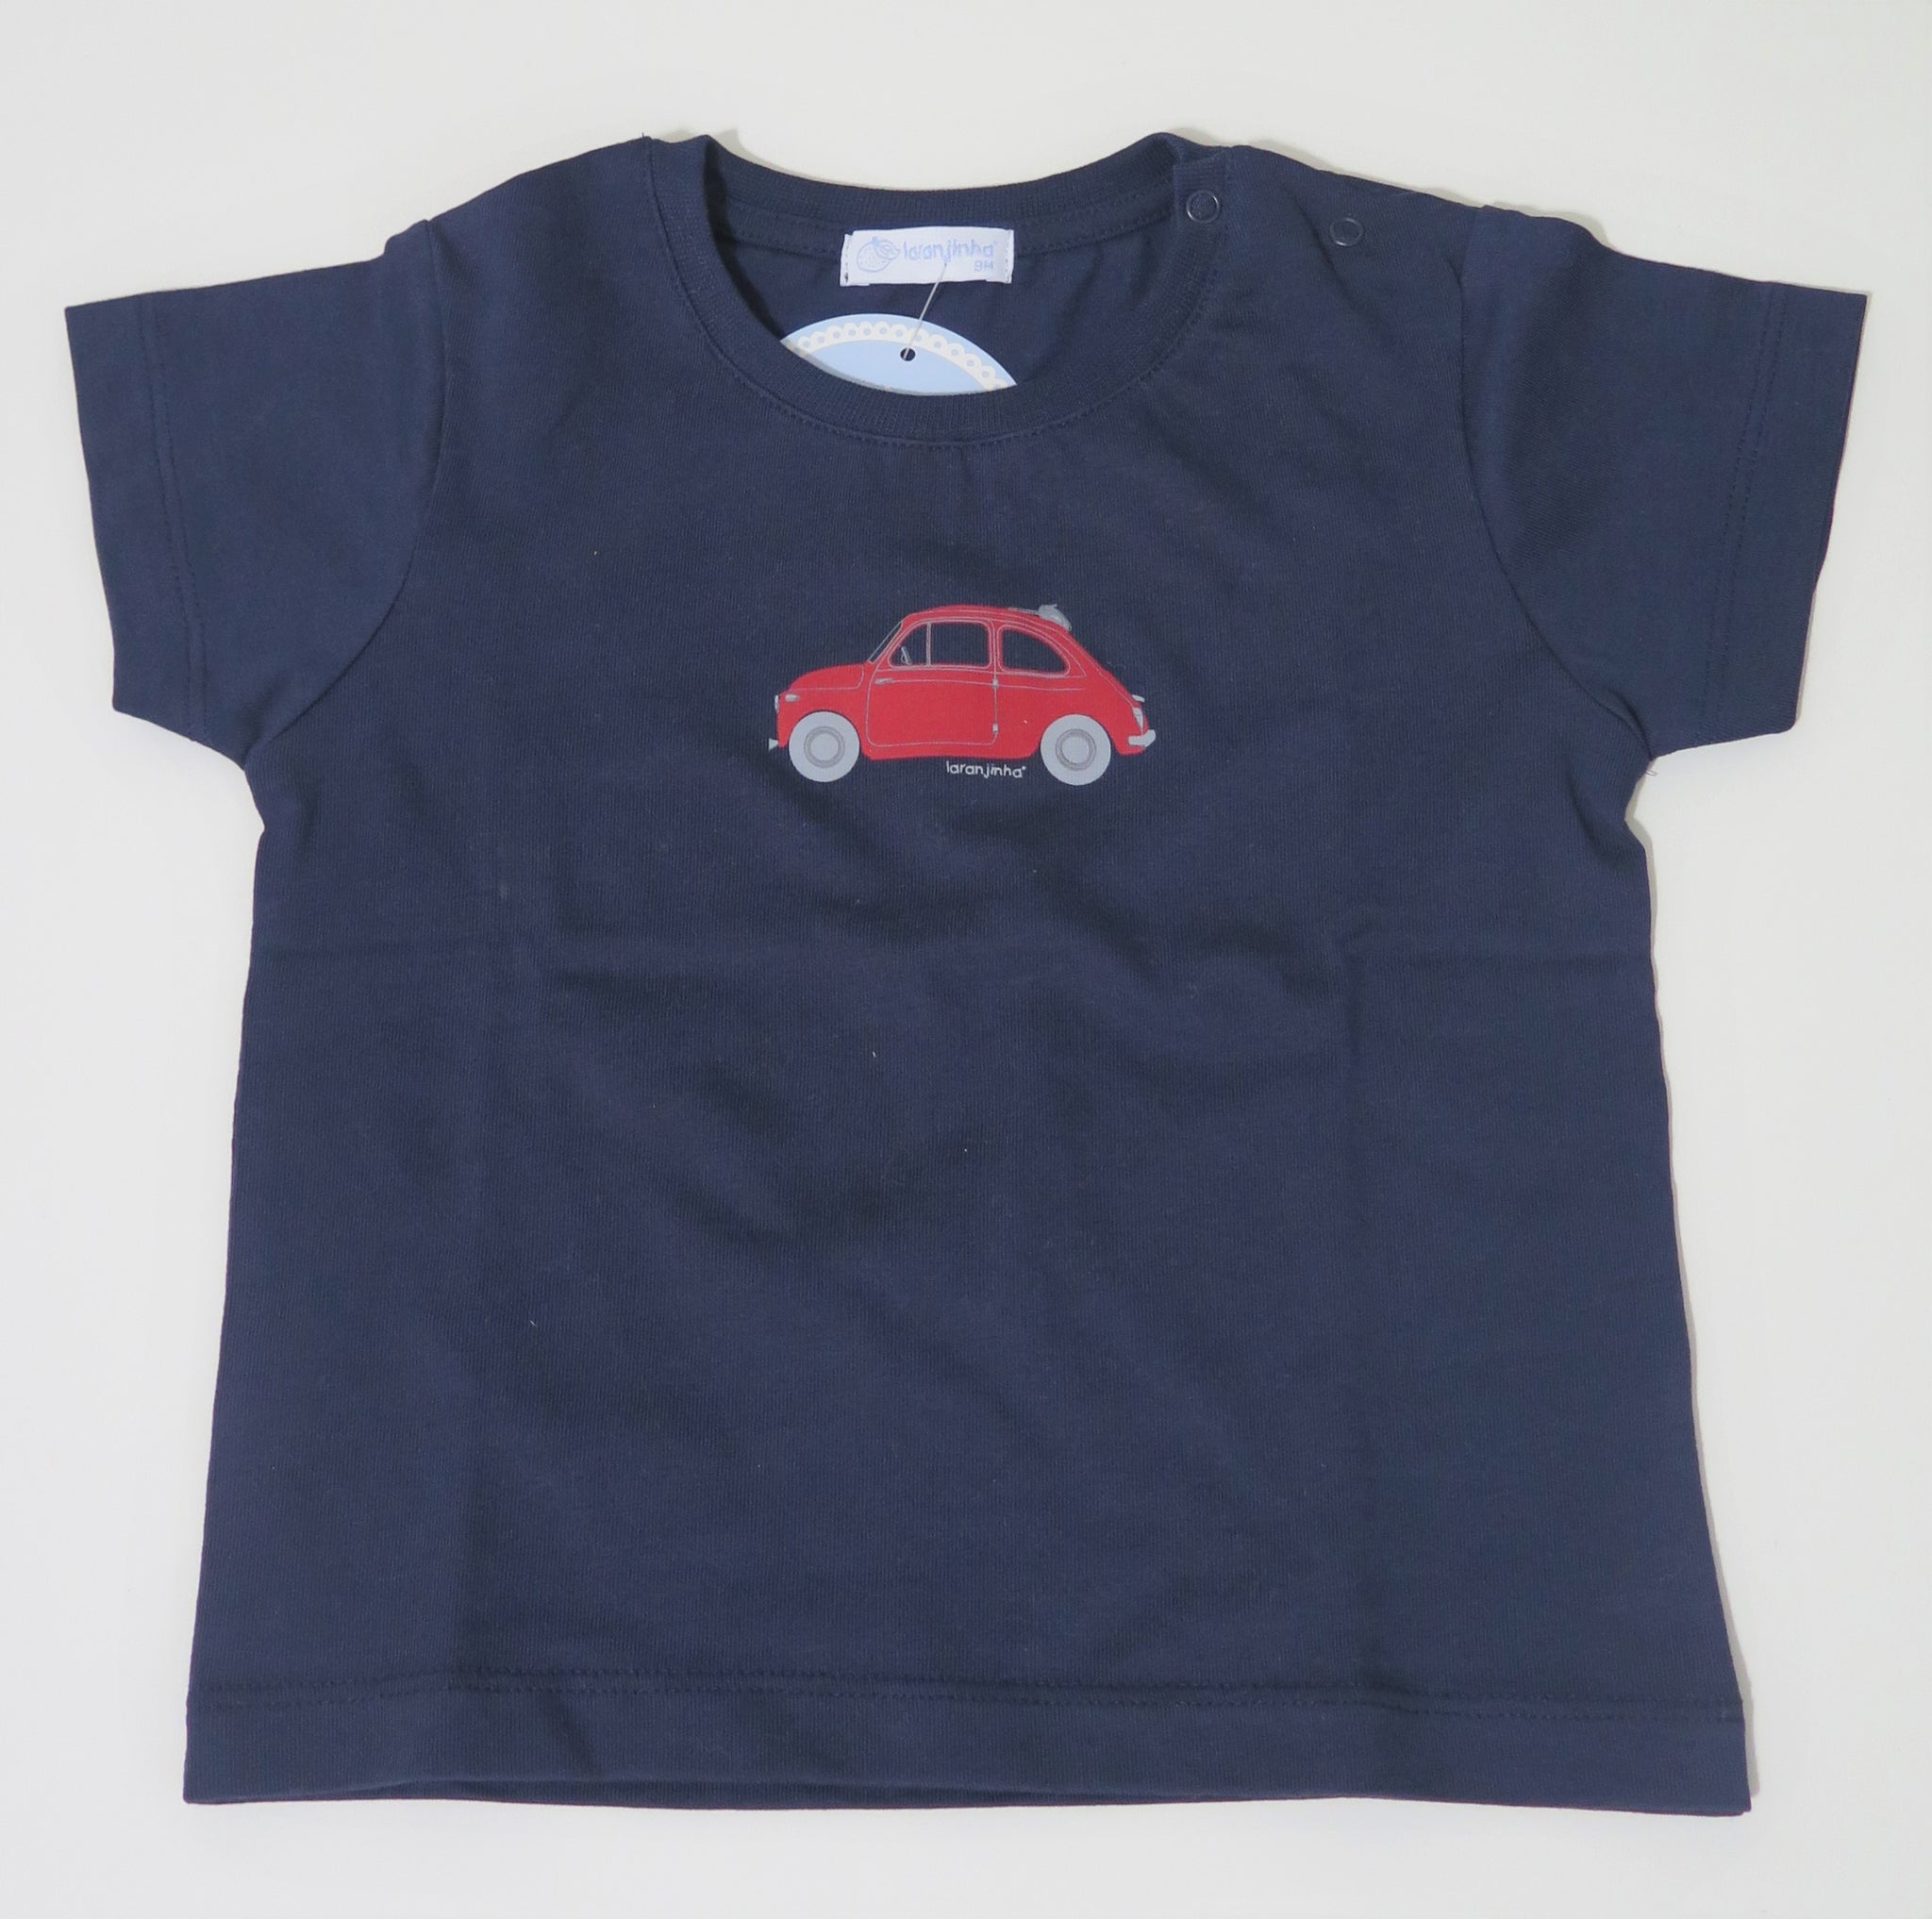 LARANJINHA NAVY T-SHIRT WITH RED CAR